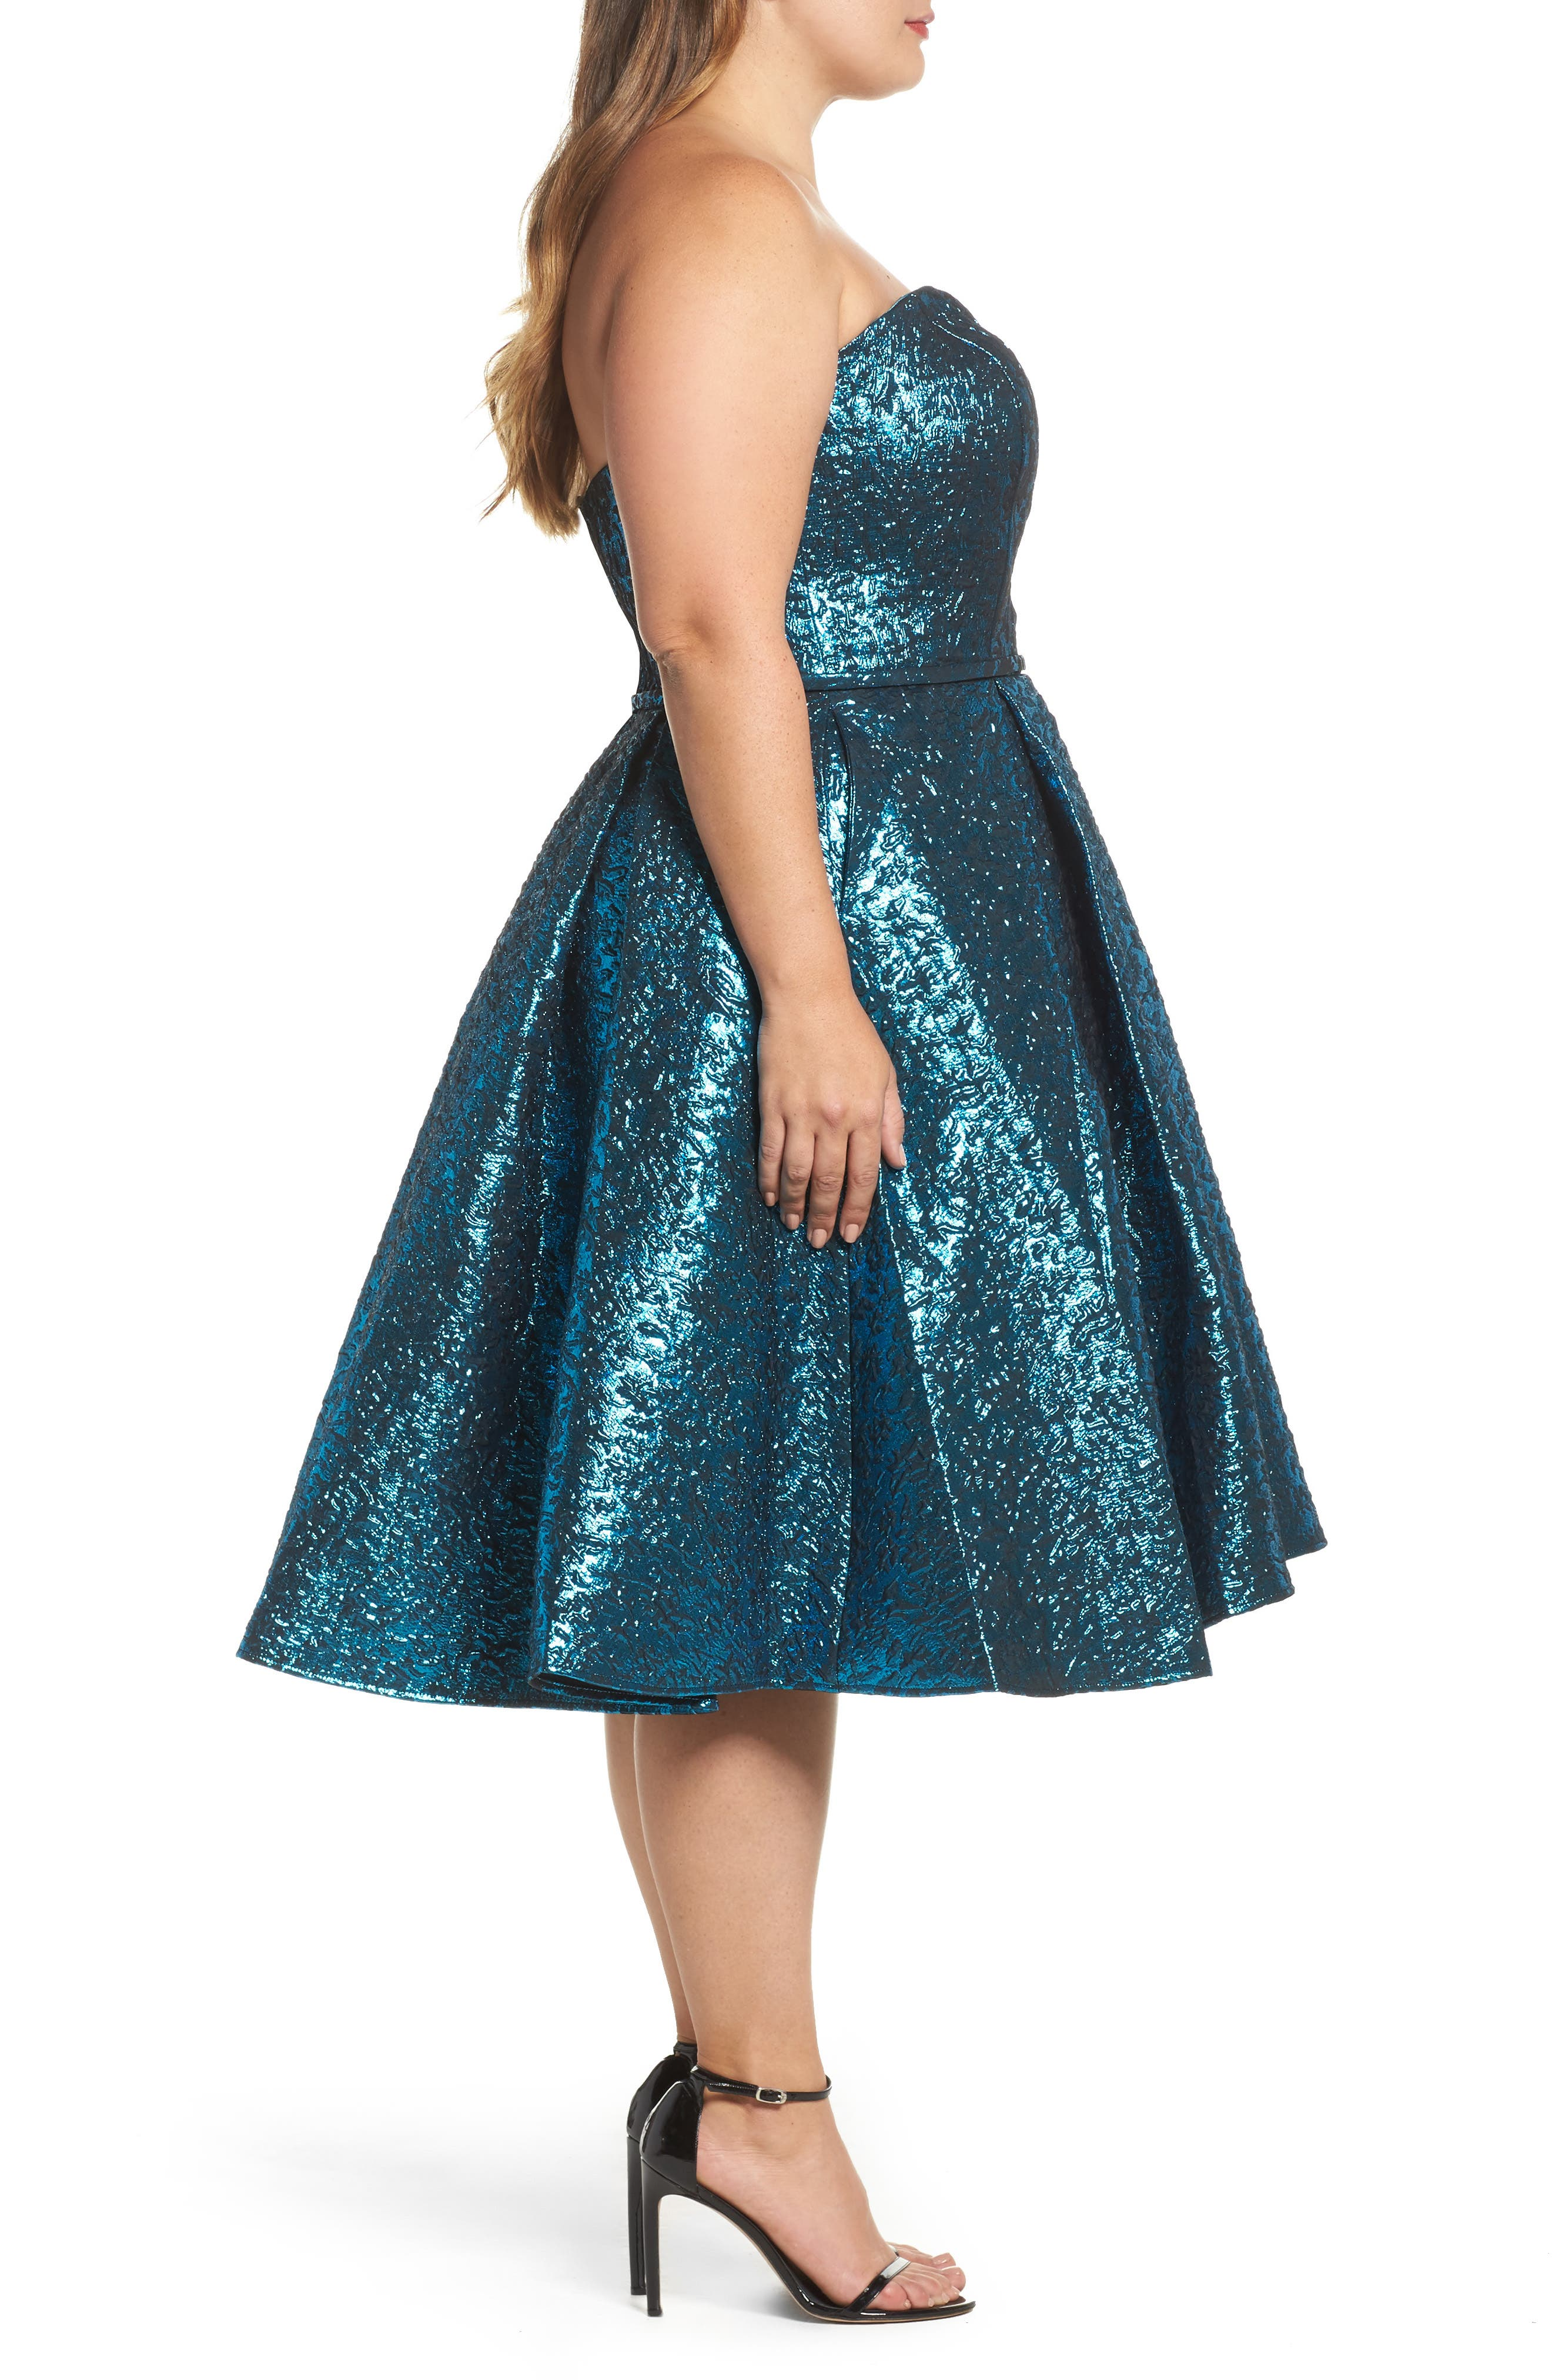 MAC DUGGAL, Metallic Fit & Flare Dress, Alternate thumbnail 3, color, TURQUOISE